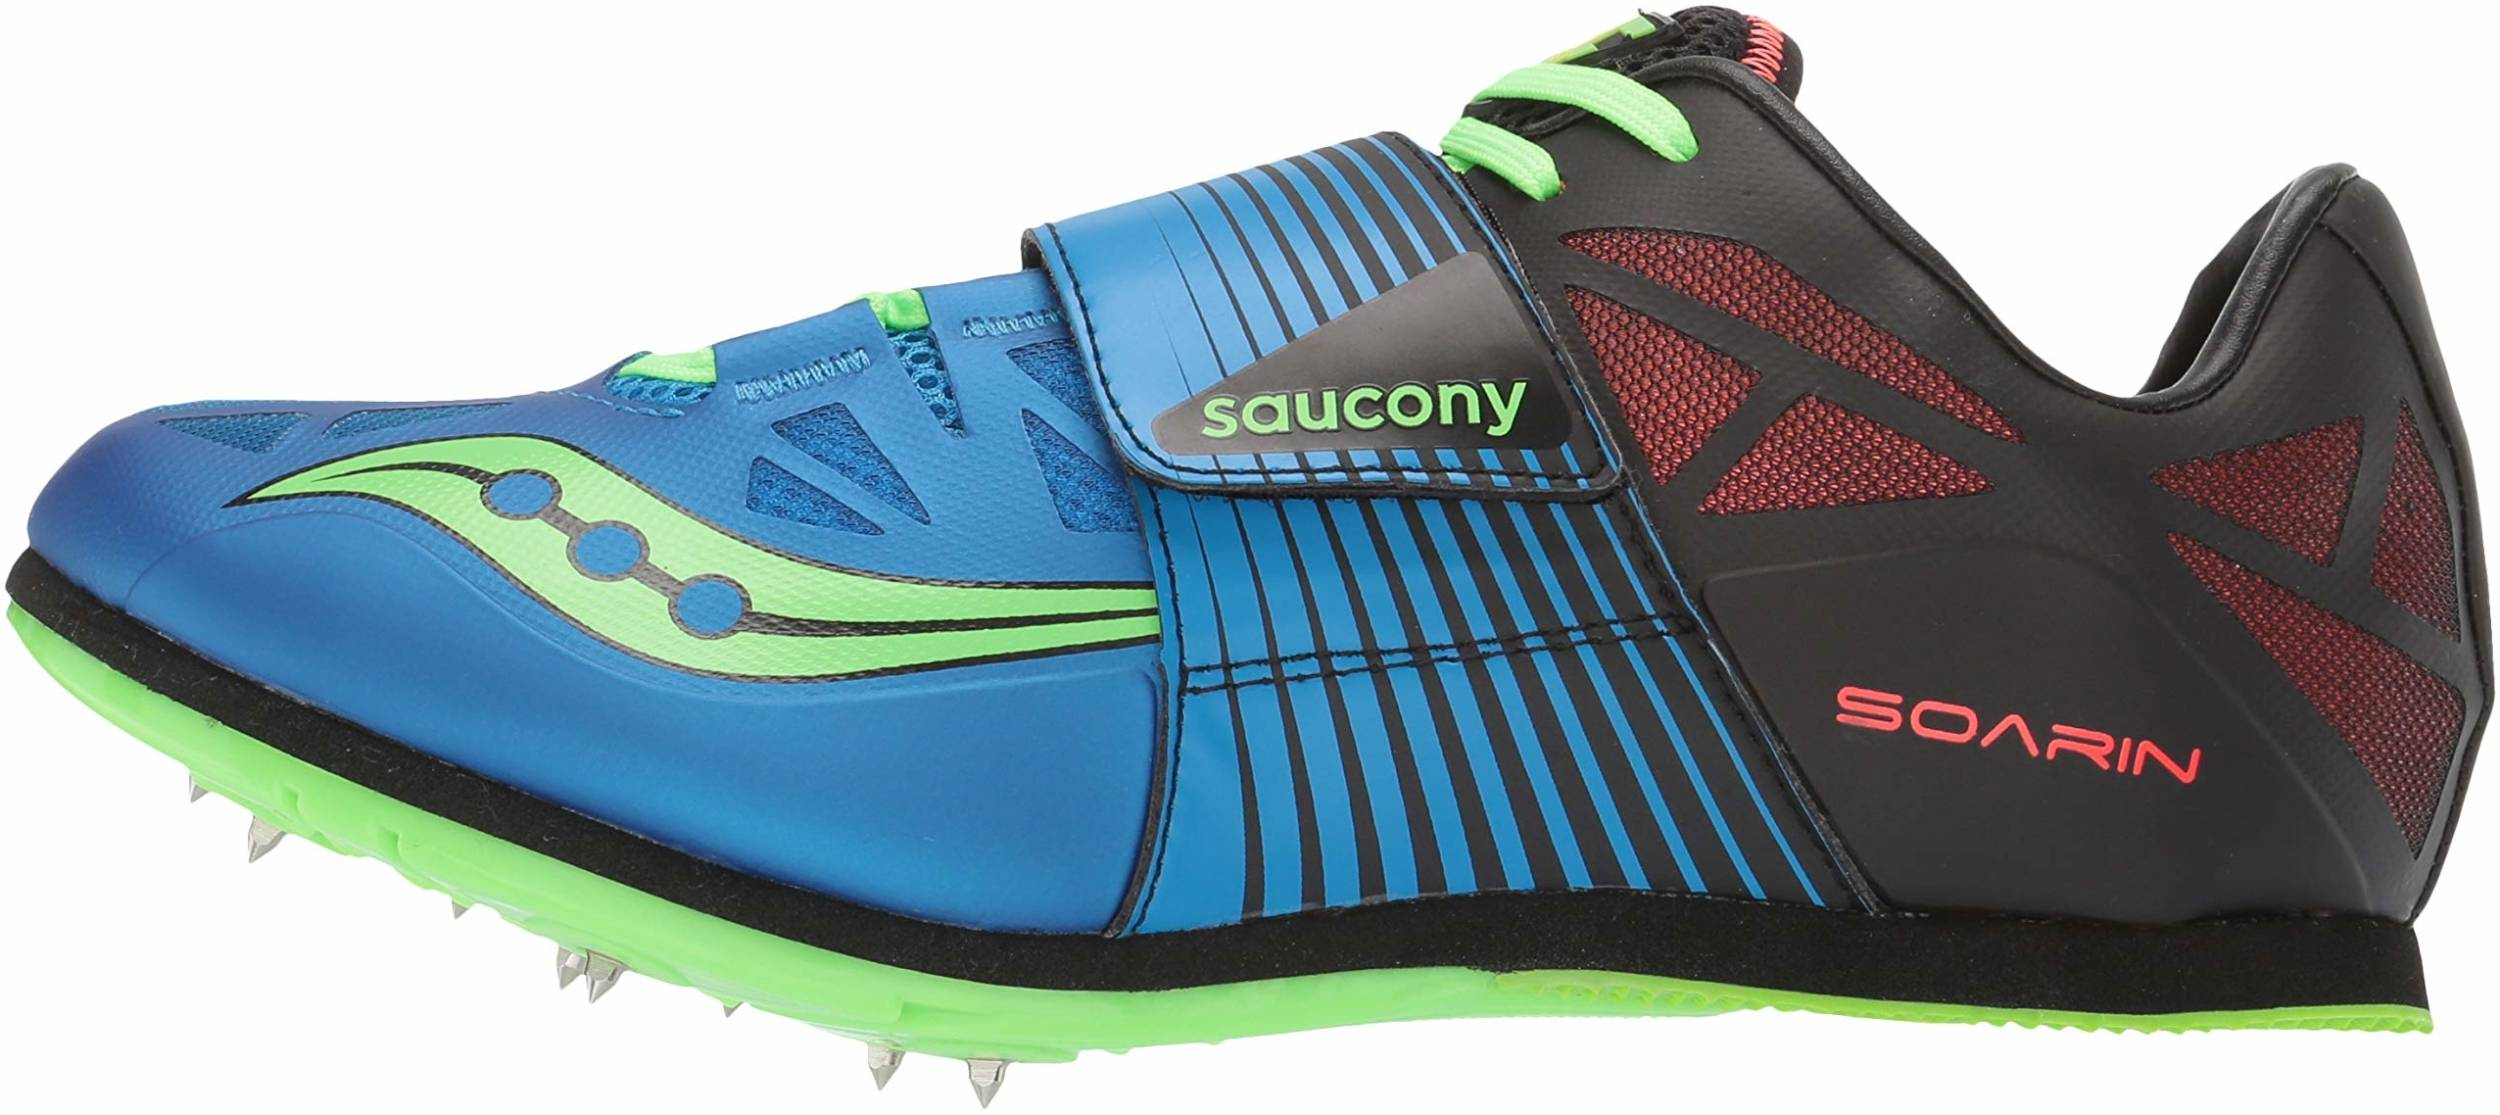 Only $25 + Review of Saucony Soarin J 2